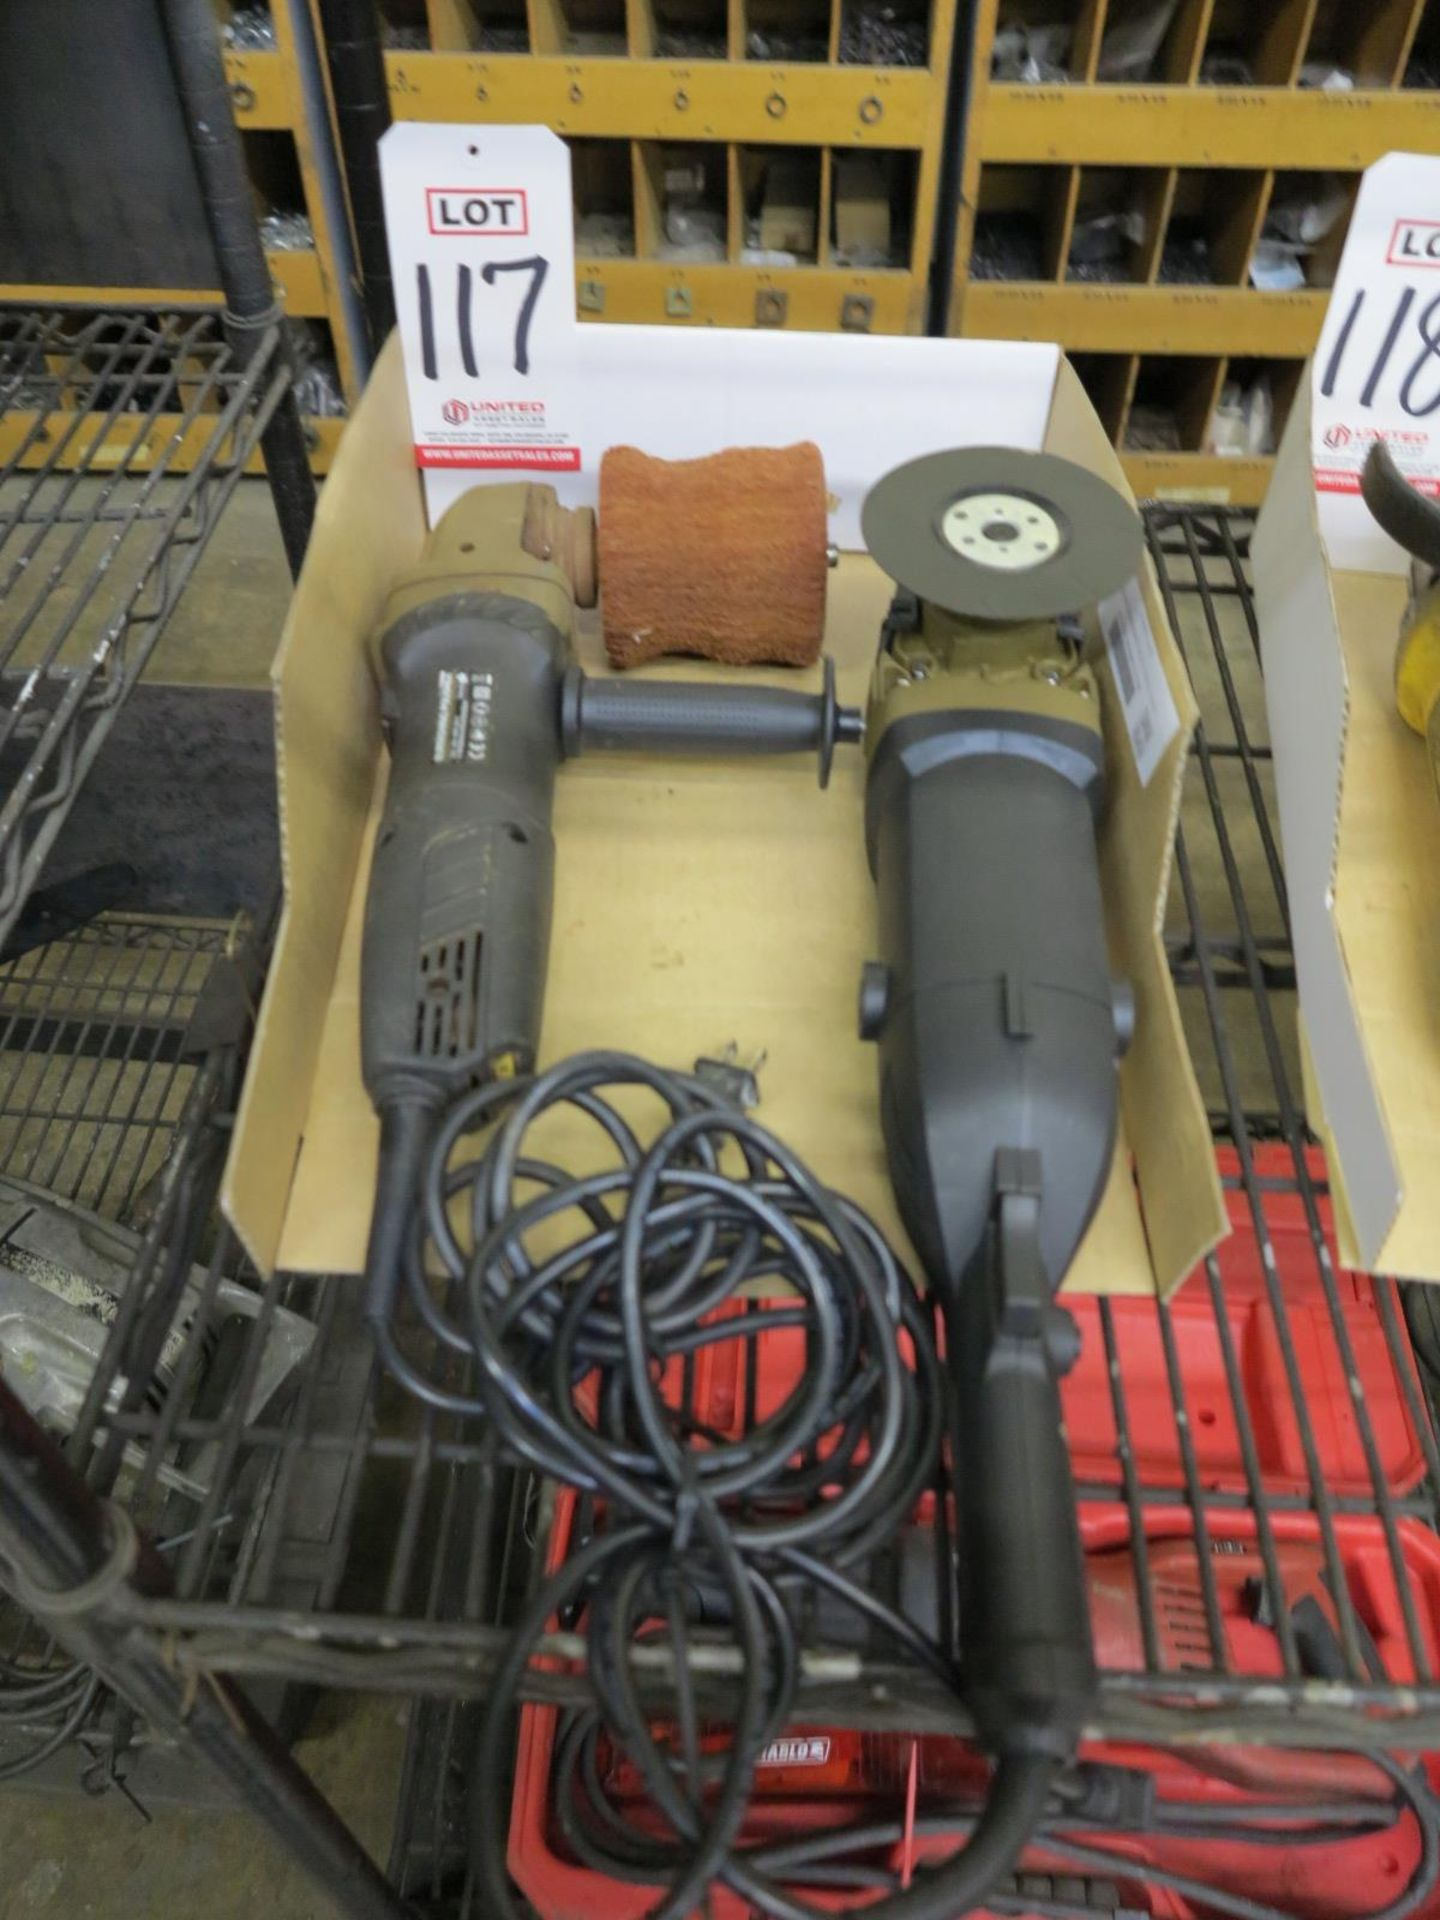 Lot 117 - LOT - (1) INTERTEK BURNISHING POLISHER AND (1) RIGHT ANGLE POLISHER